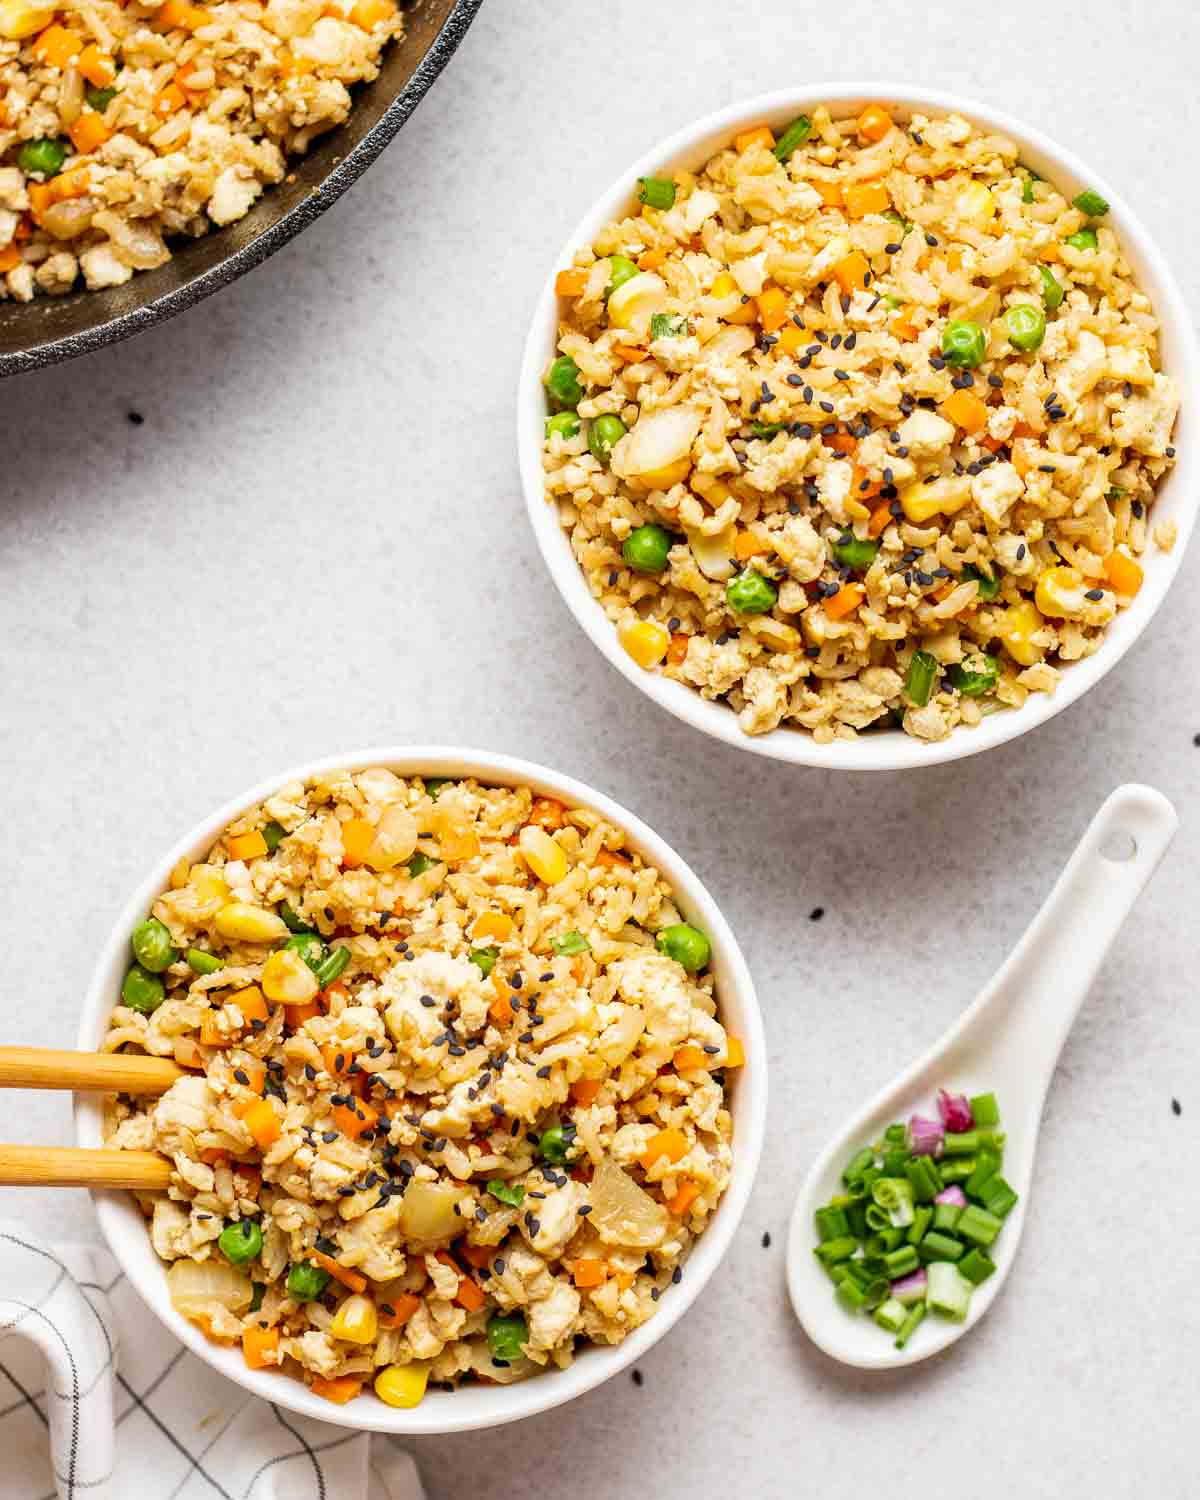 2 bowls of fried rice with chopped scallions and a skillet in the background.